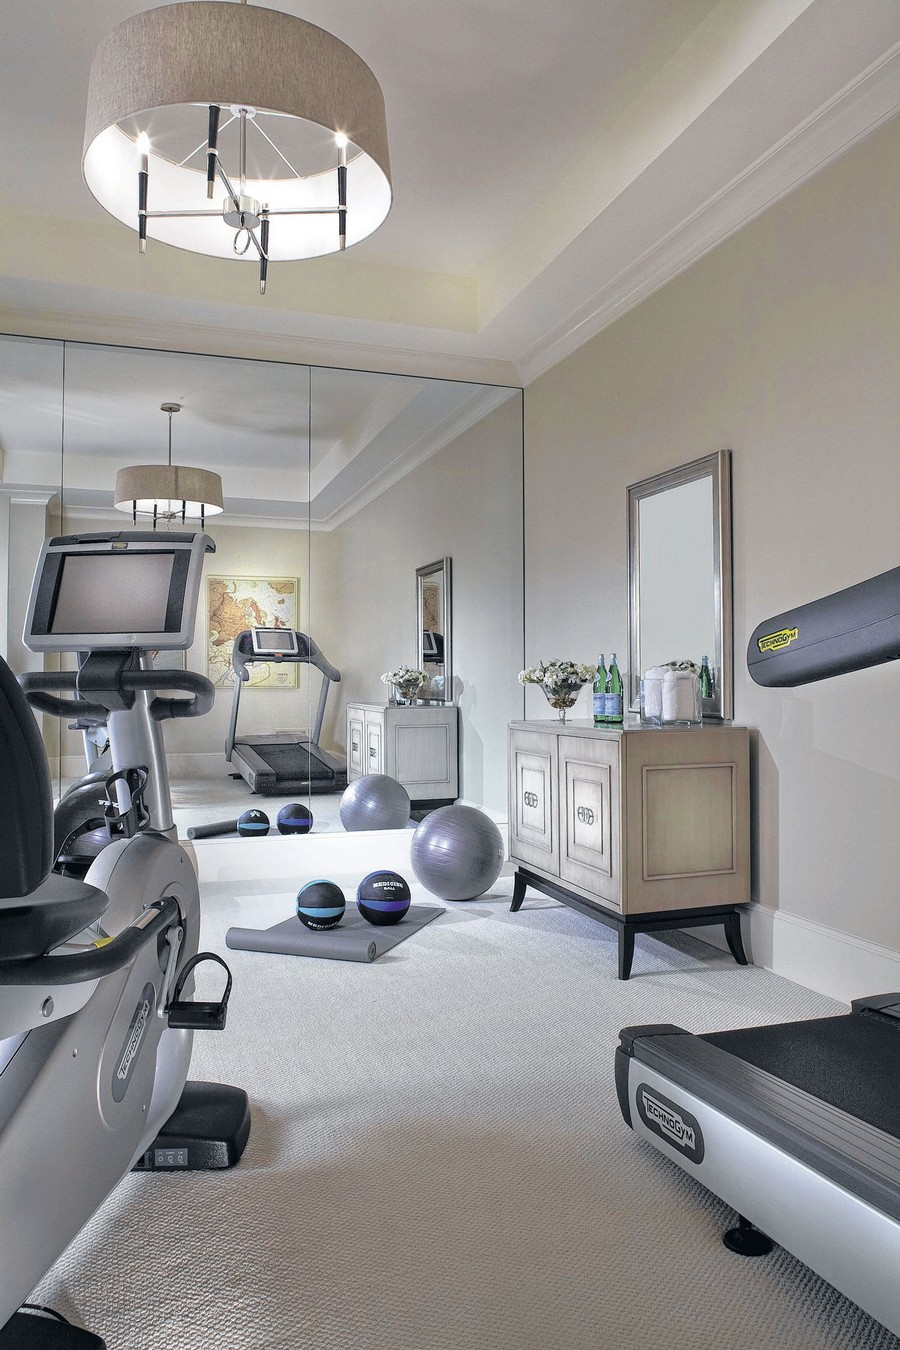 Home gym interior design tips home interior design for Home interior design tips